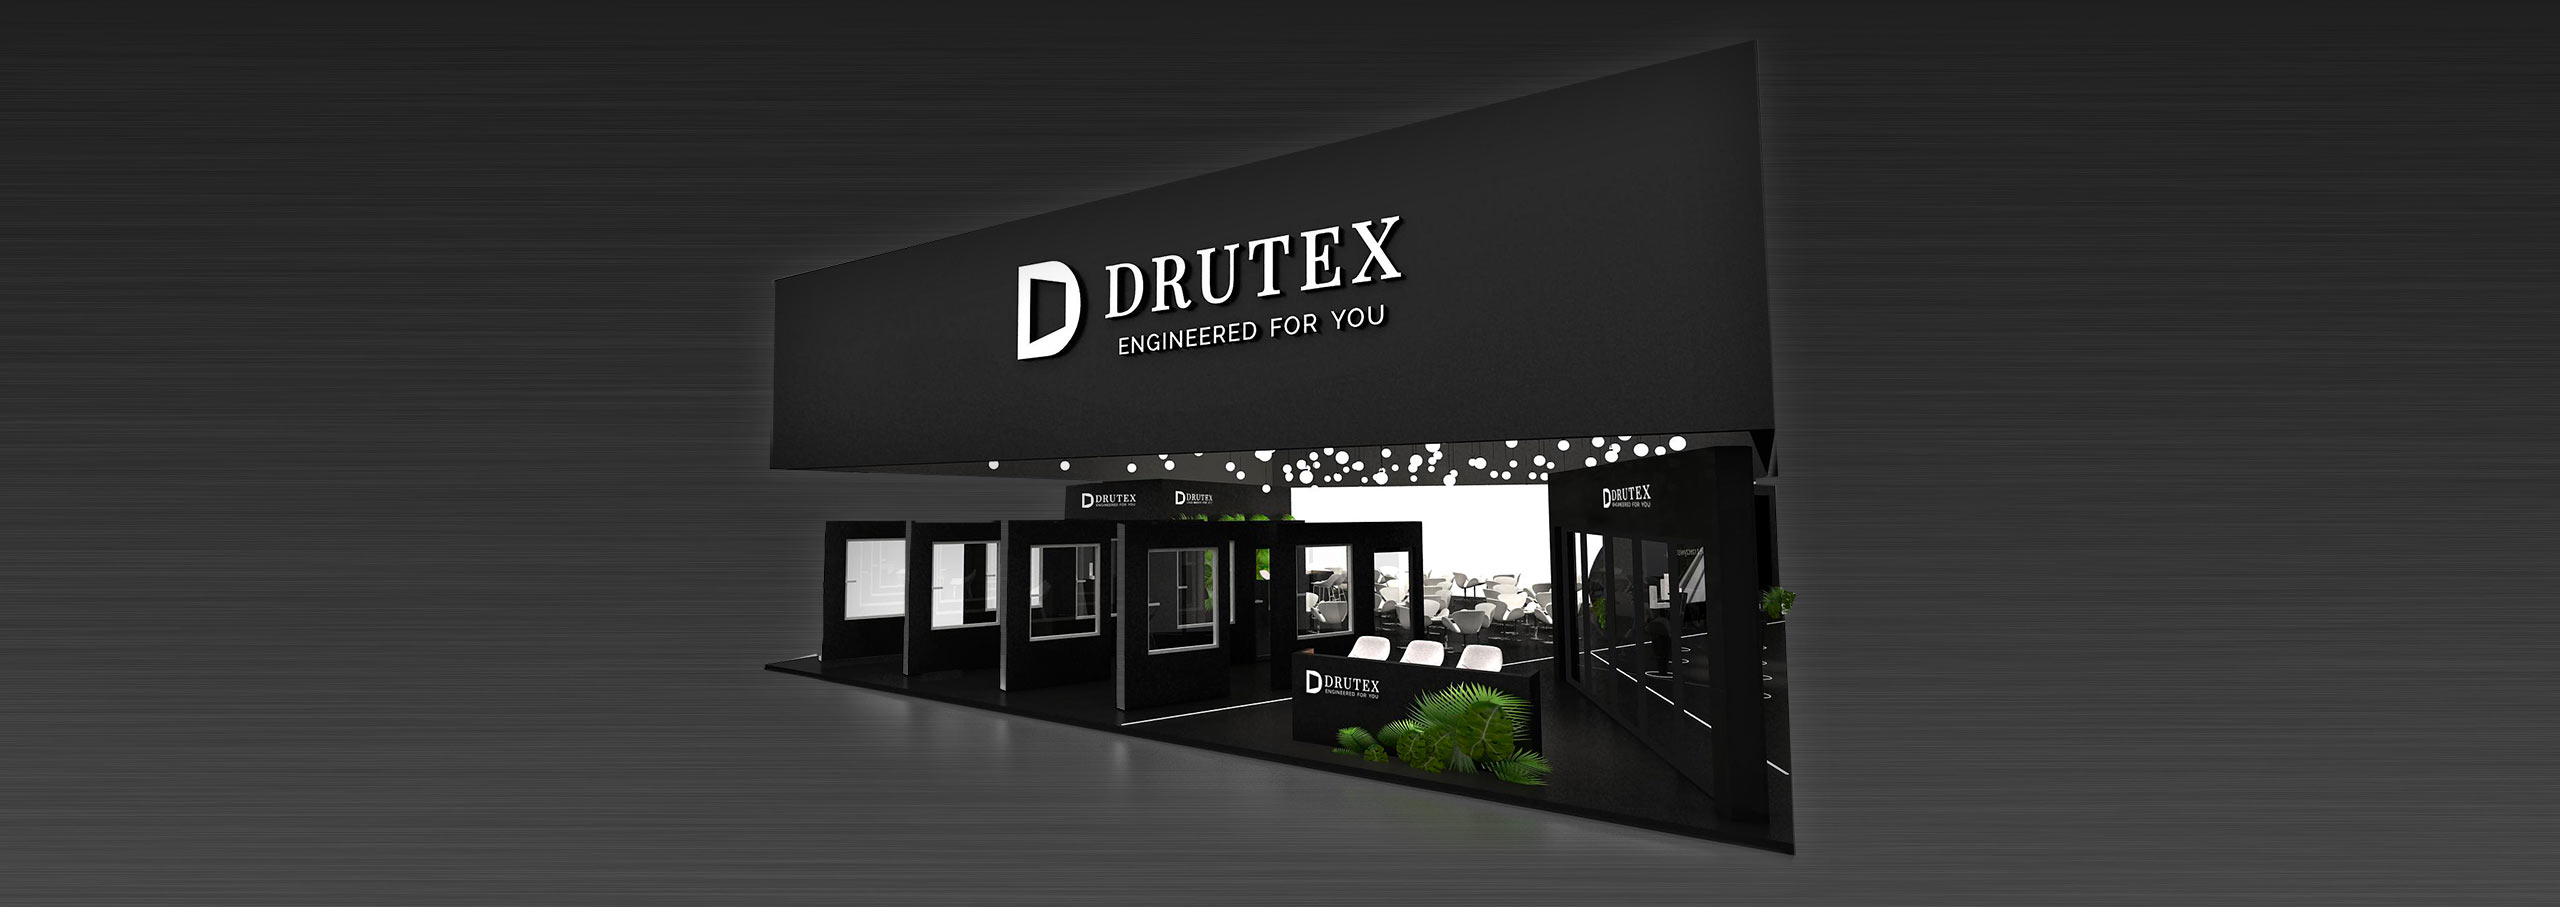 Produits de Drutex au Salon International de la construction « Budma » à Poznań